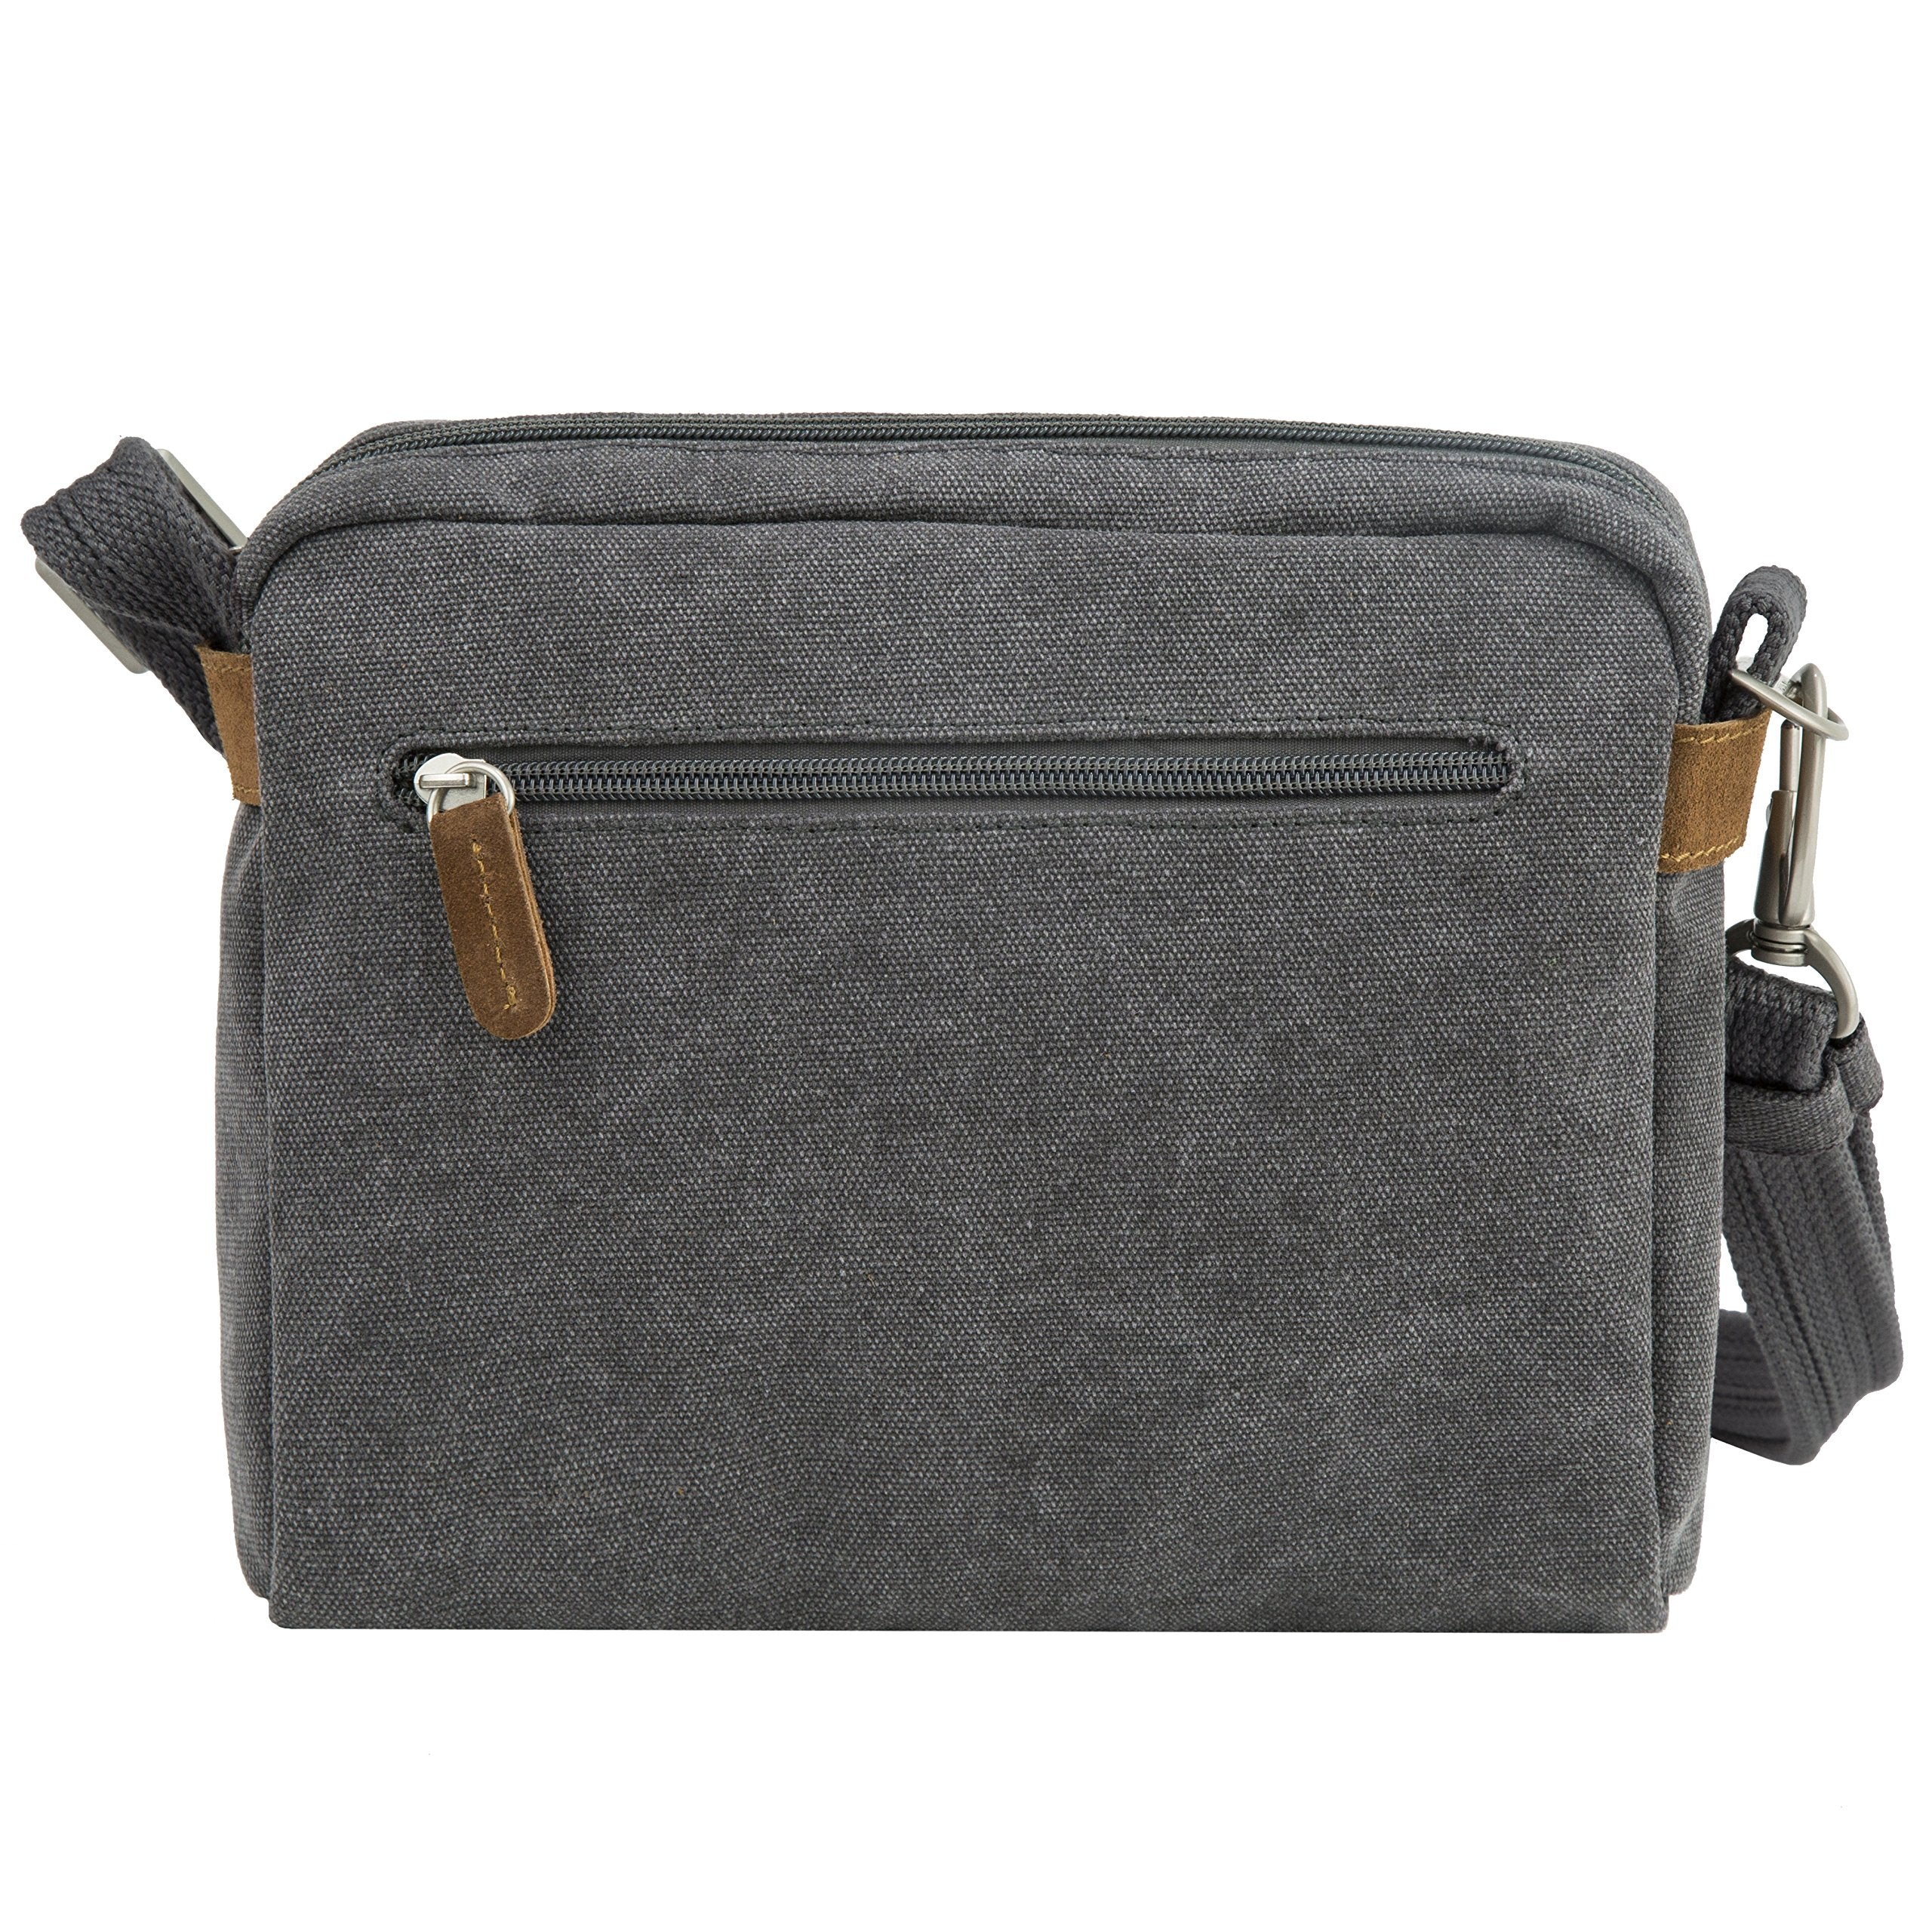 Travelon Anti-Theft Heritage Crossbody Bag, Pewter (Gray) - 33071 540 - yrGear